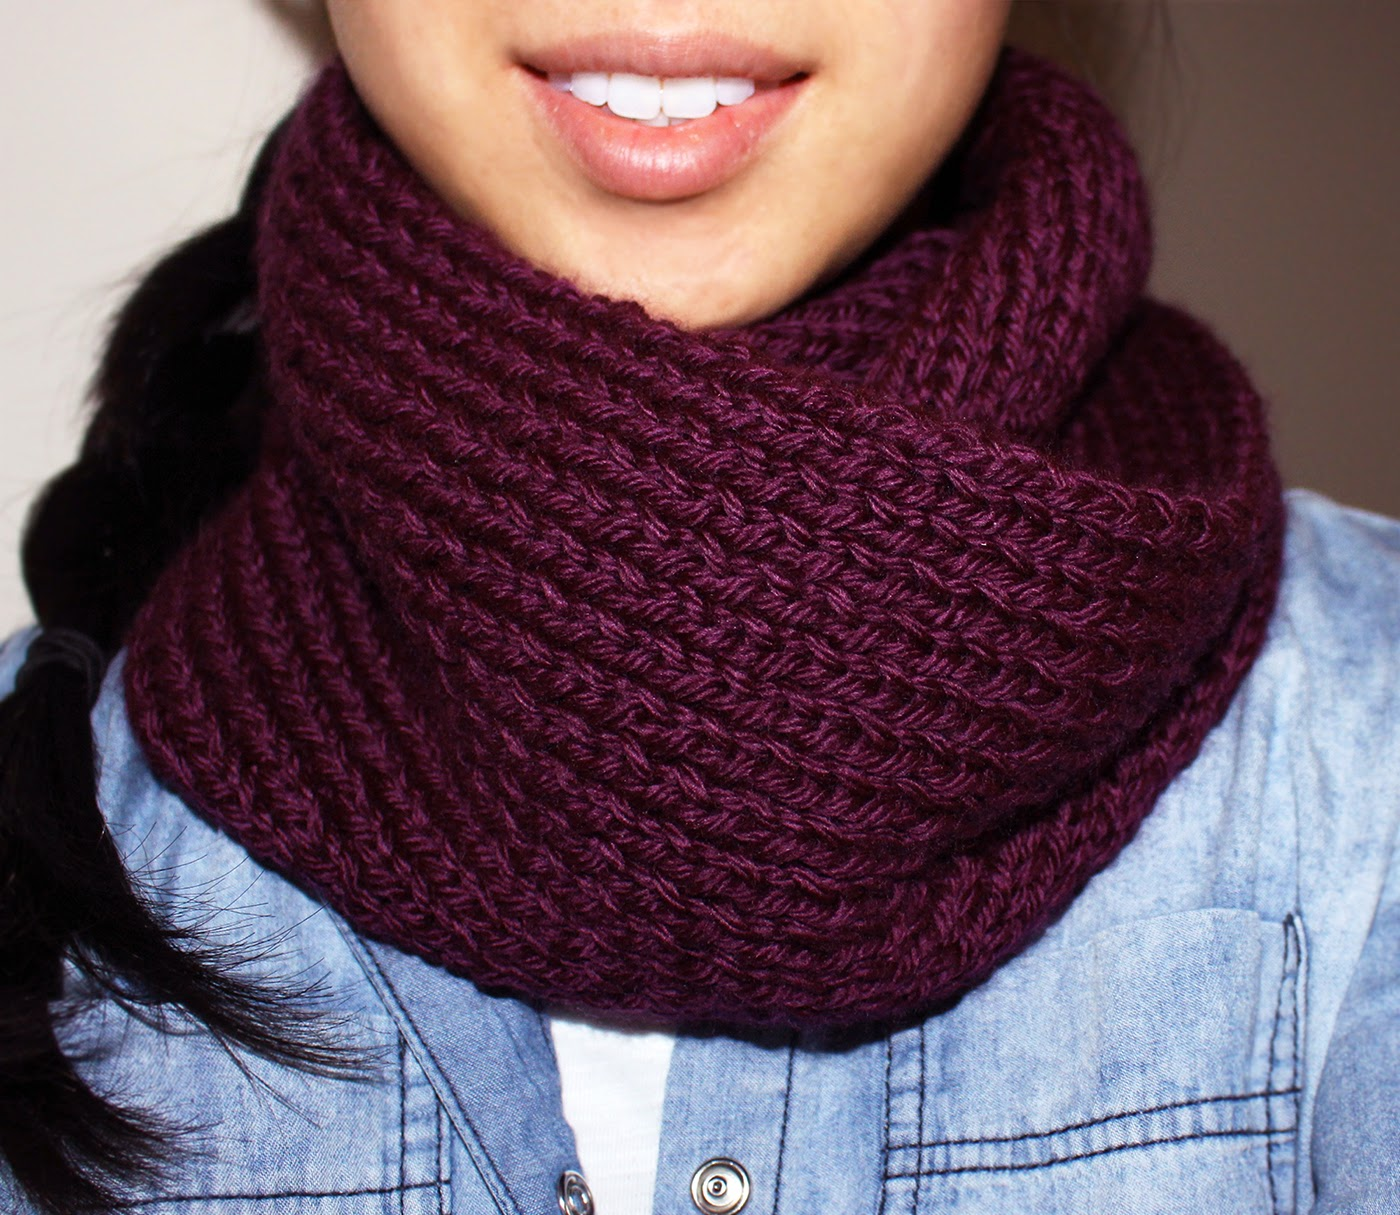 Easy Knitting Stitches For A Scarf : Purllin: Acai Infinity Circle Scarf [free knitting pattern]